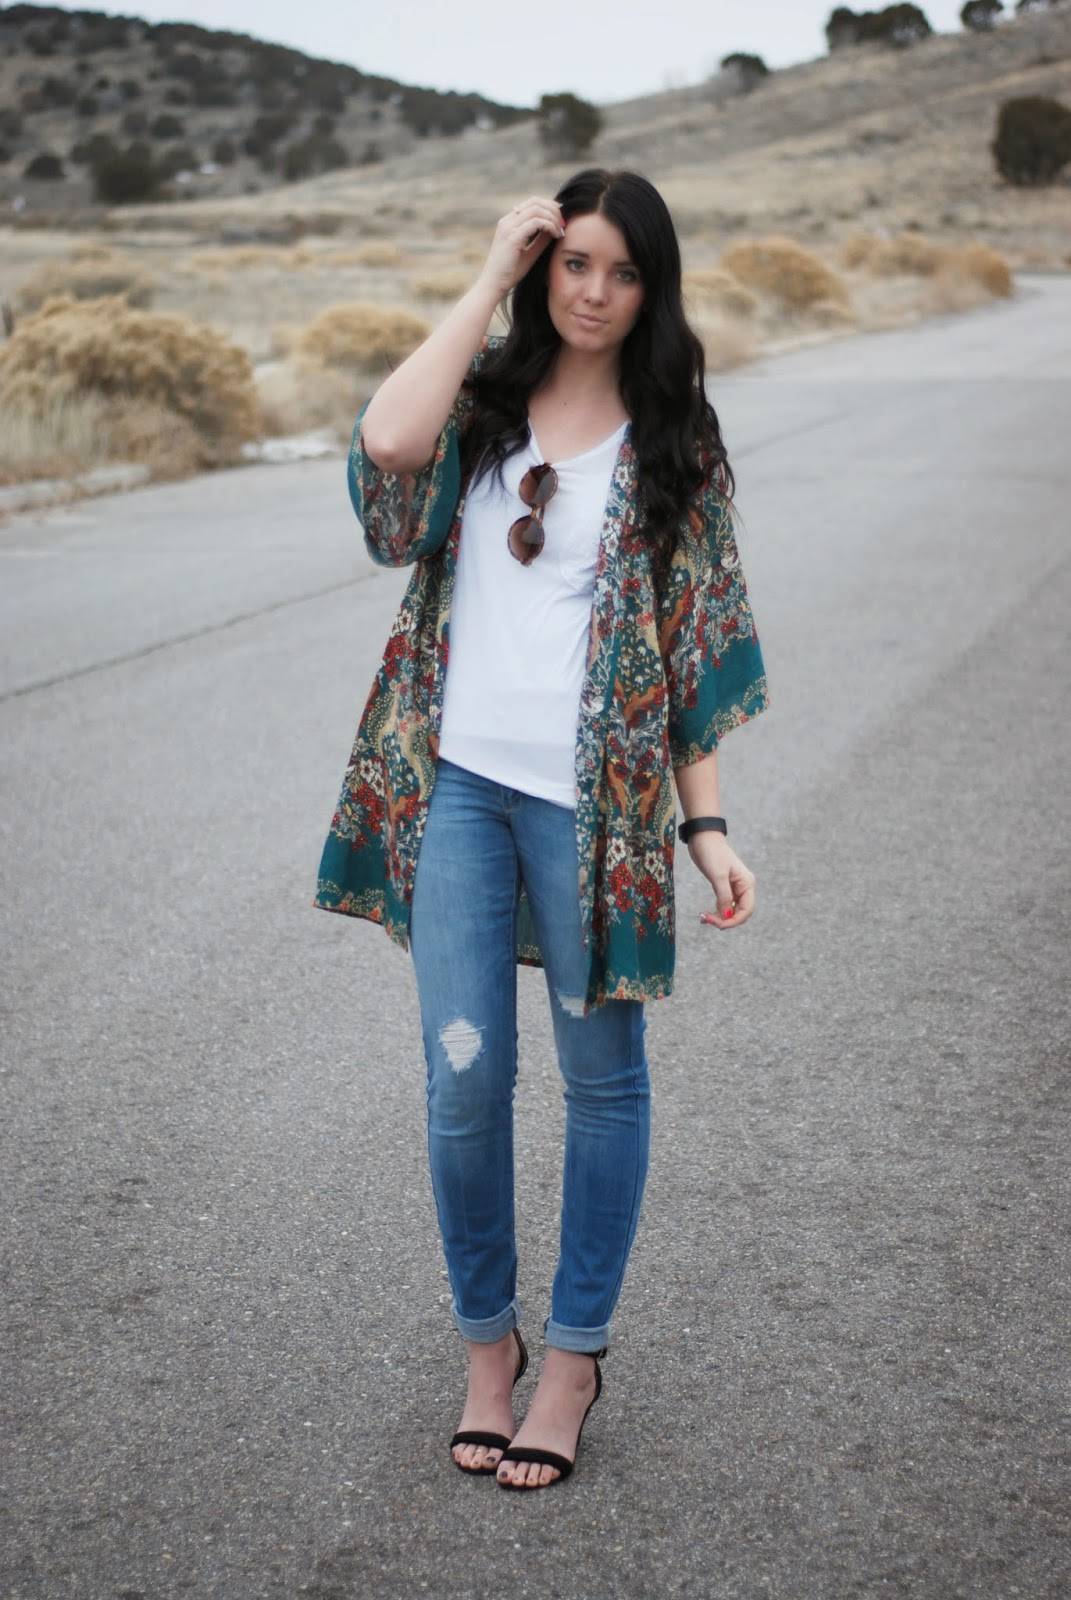 Kimono Style Featuring Styles For Less The Red Closet Diary